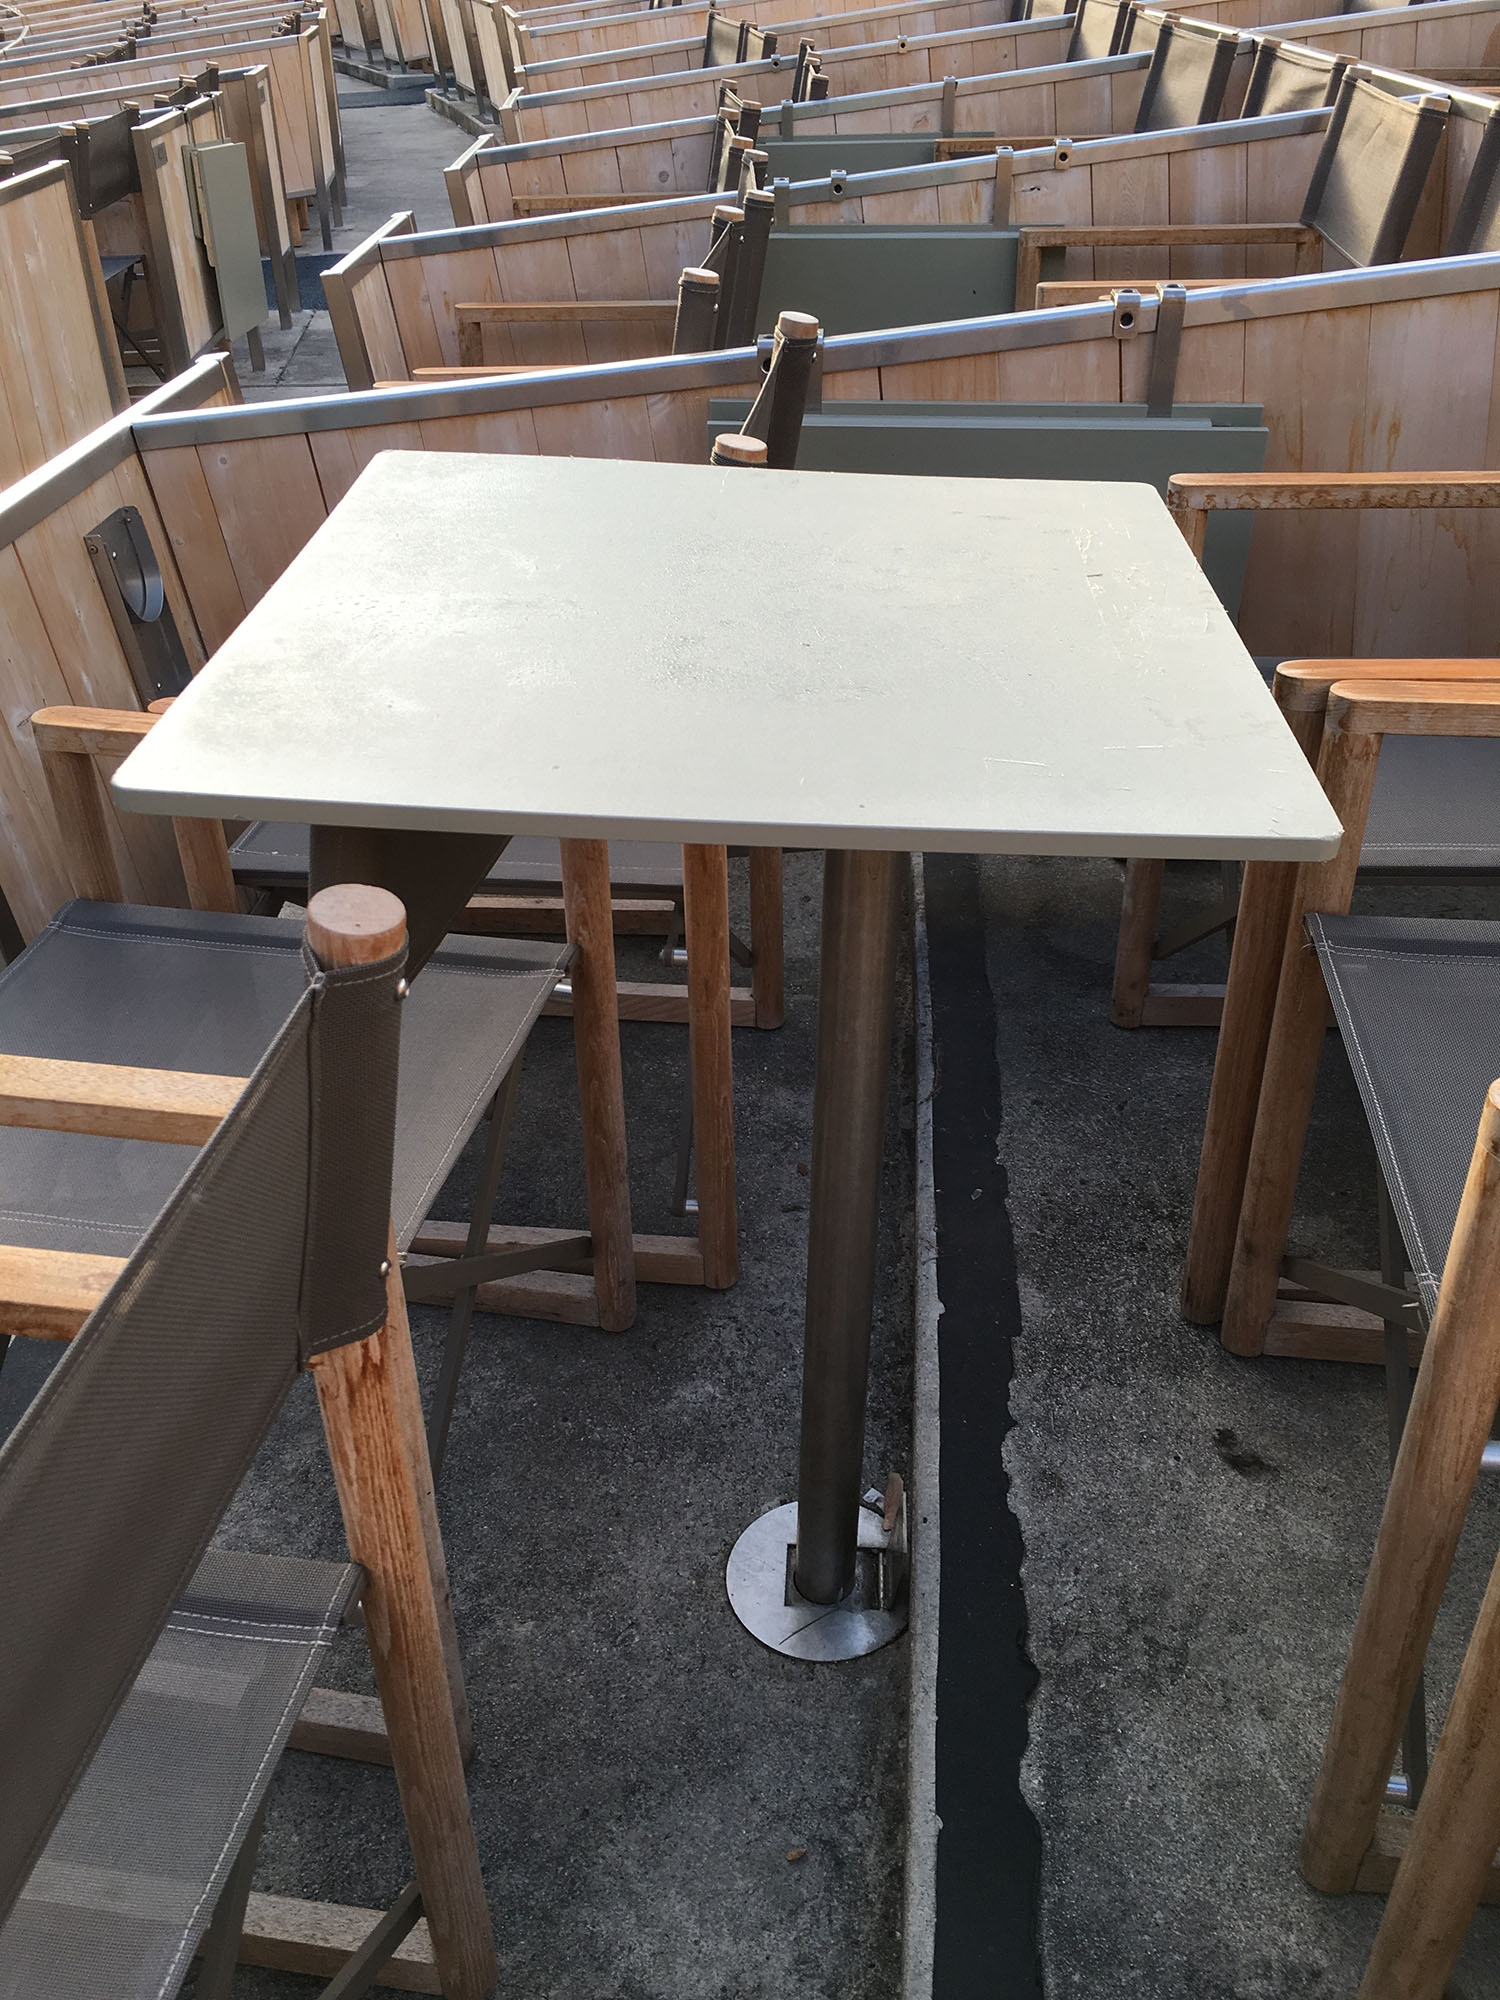 Hollywood Bowl 6-person box table